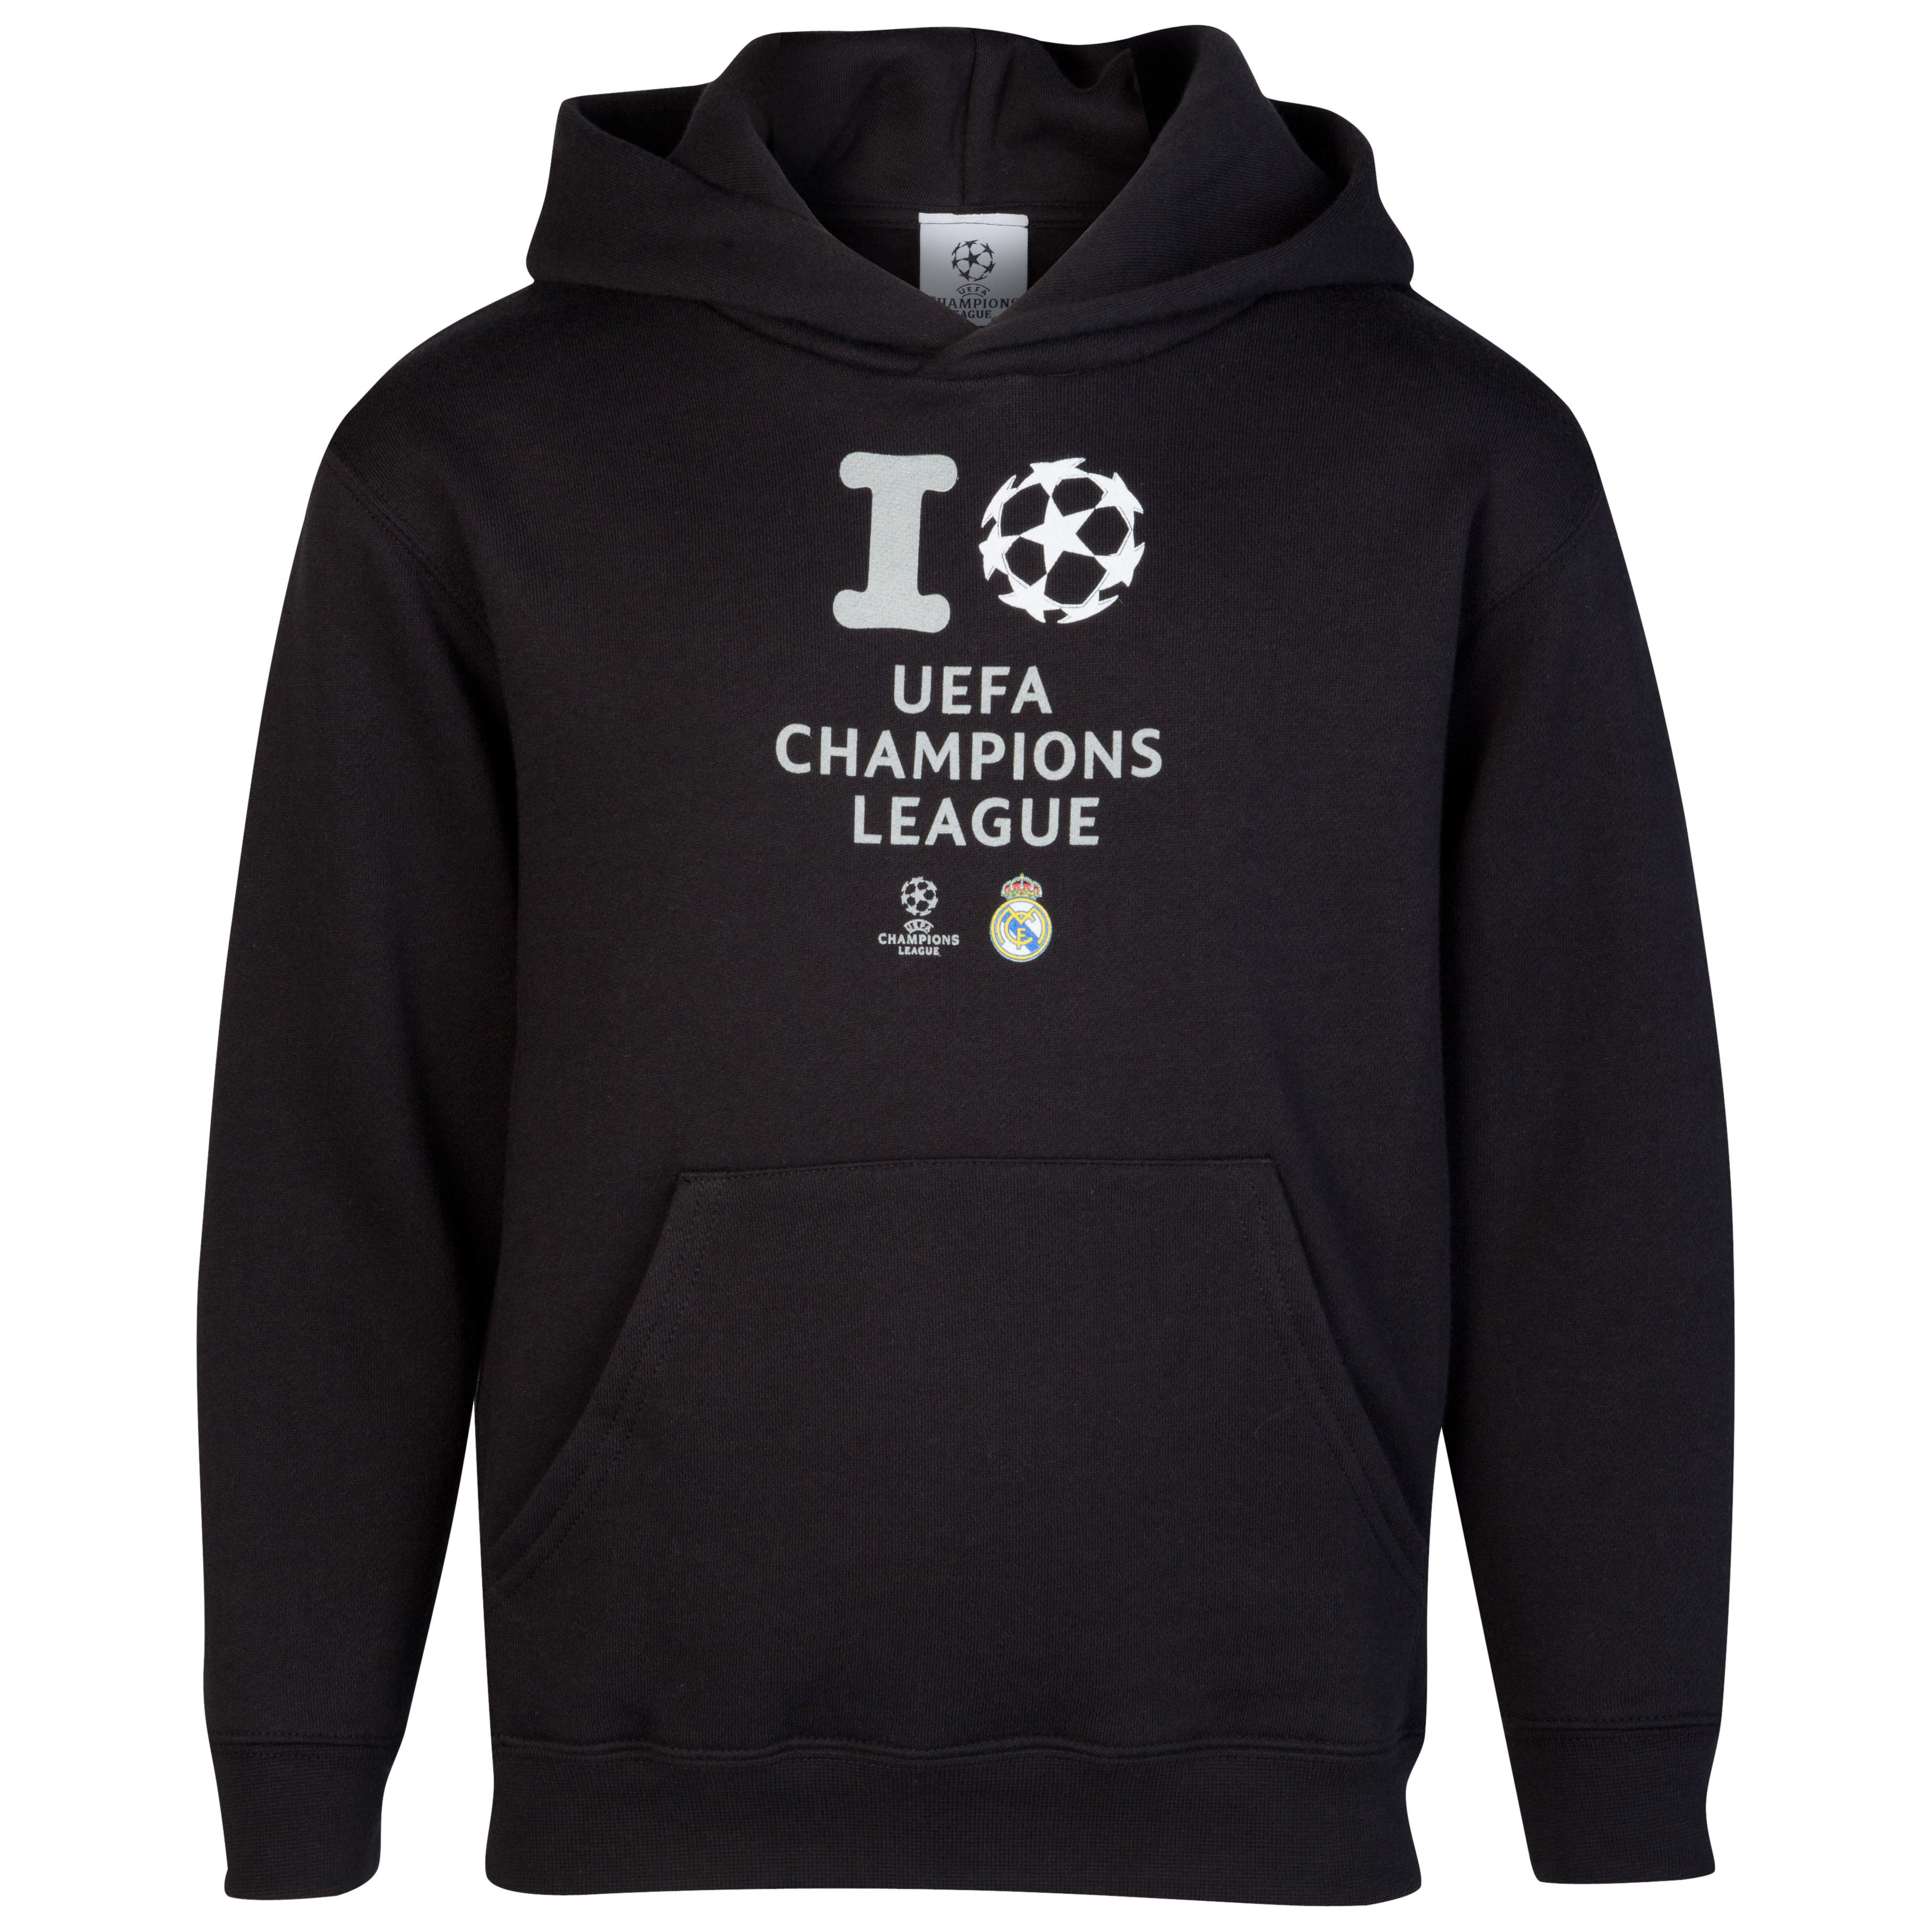 Real Madrid UEFA Champions League 'I Love UCL' Glow In The Dark Printed Hoody - Black - Junior